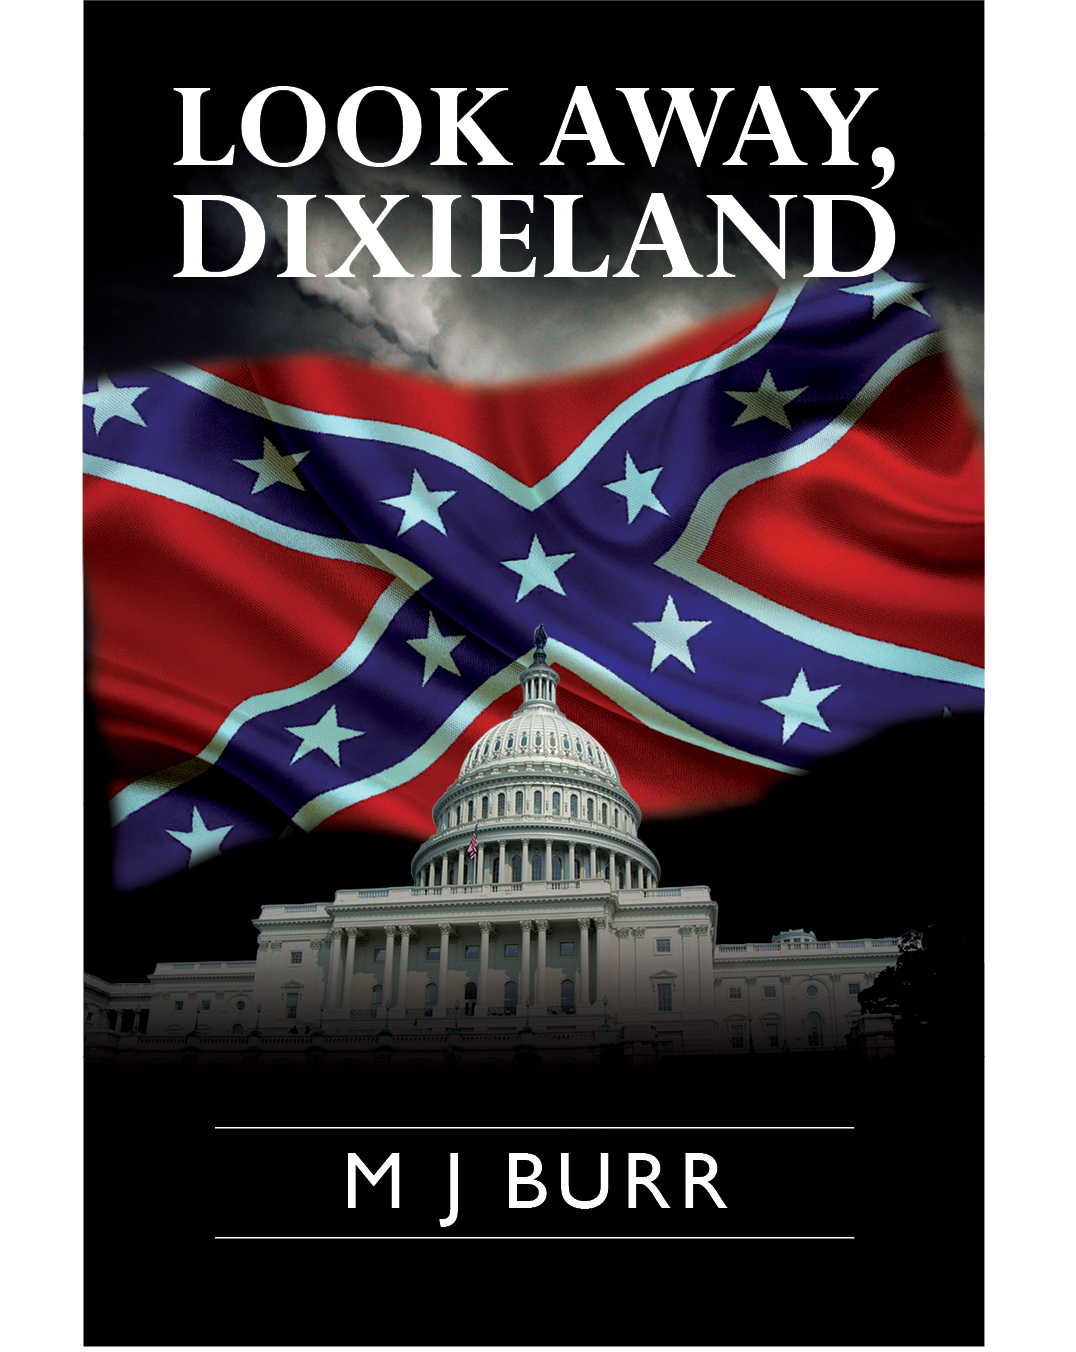 Look Away Dixieland M J Burr